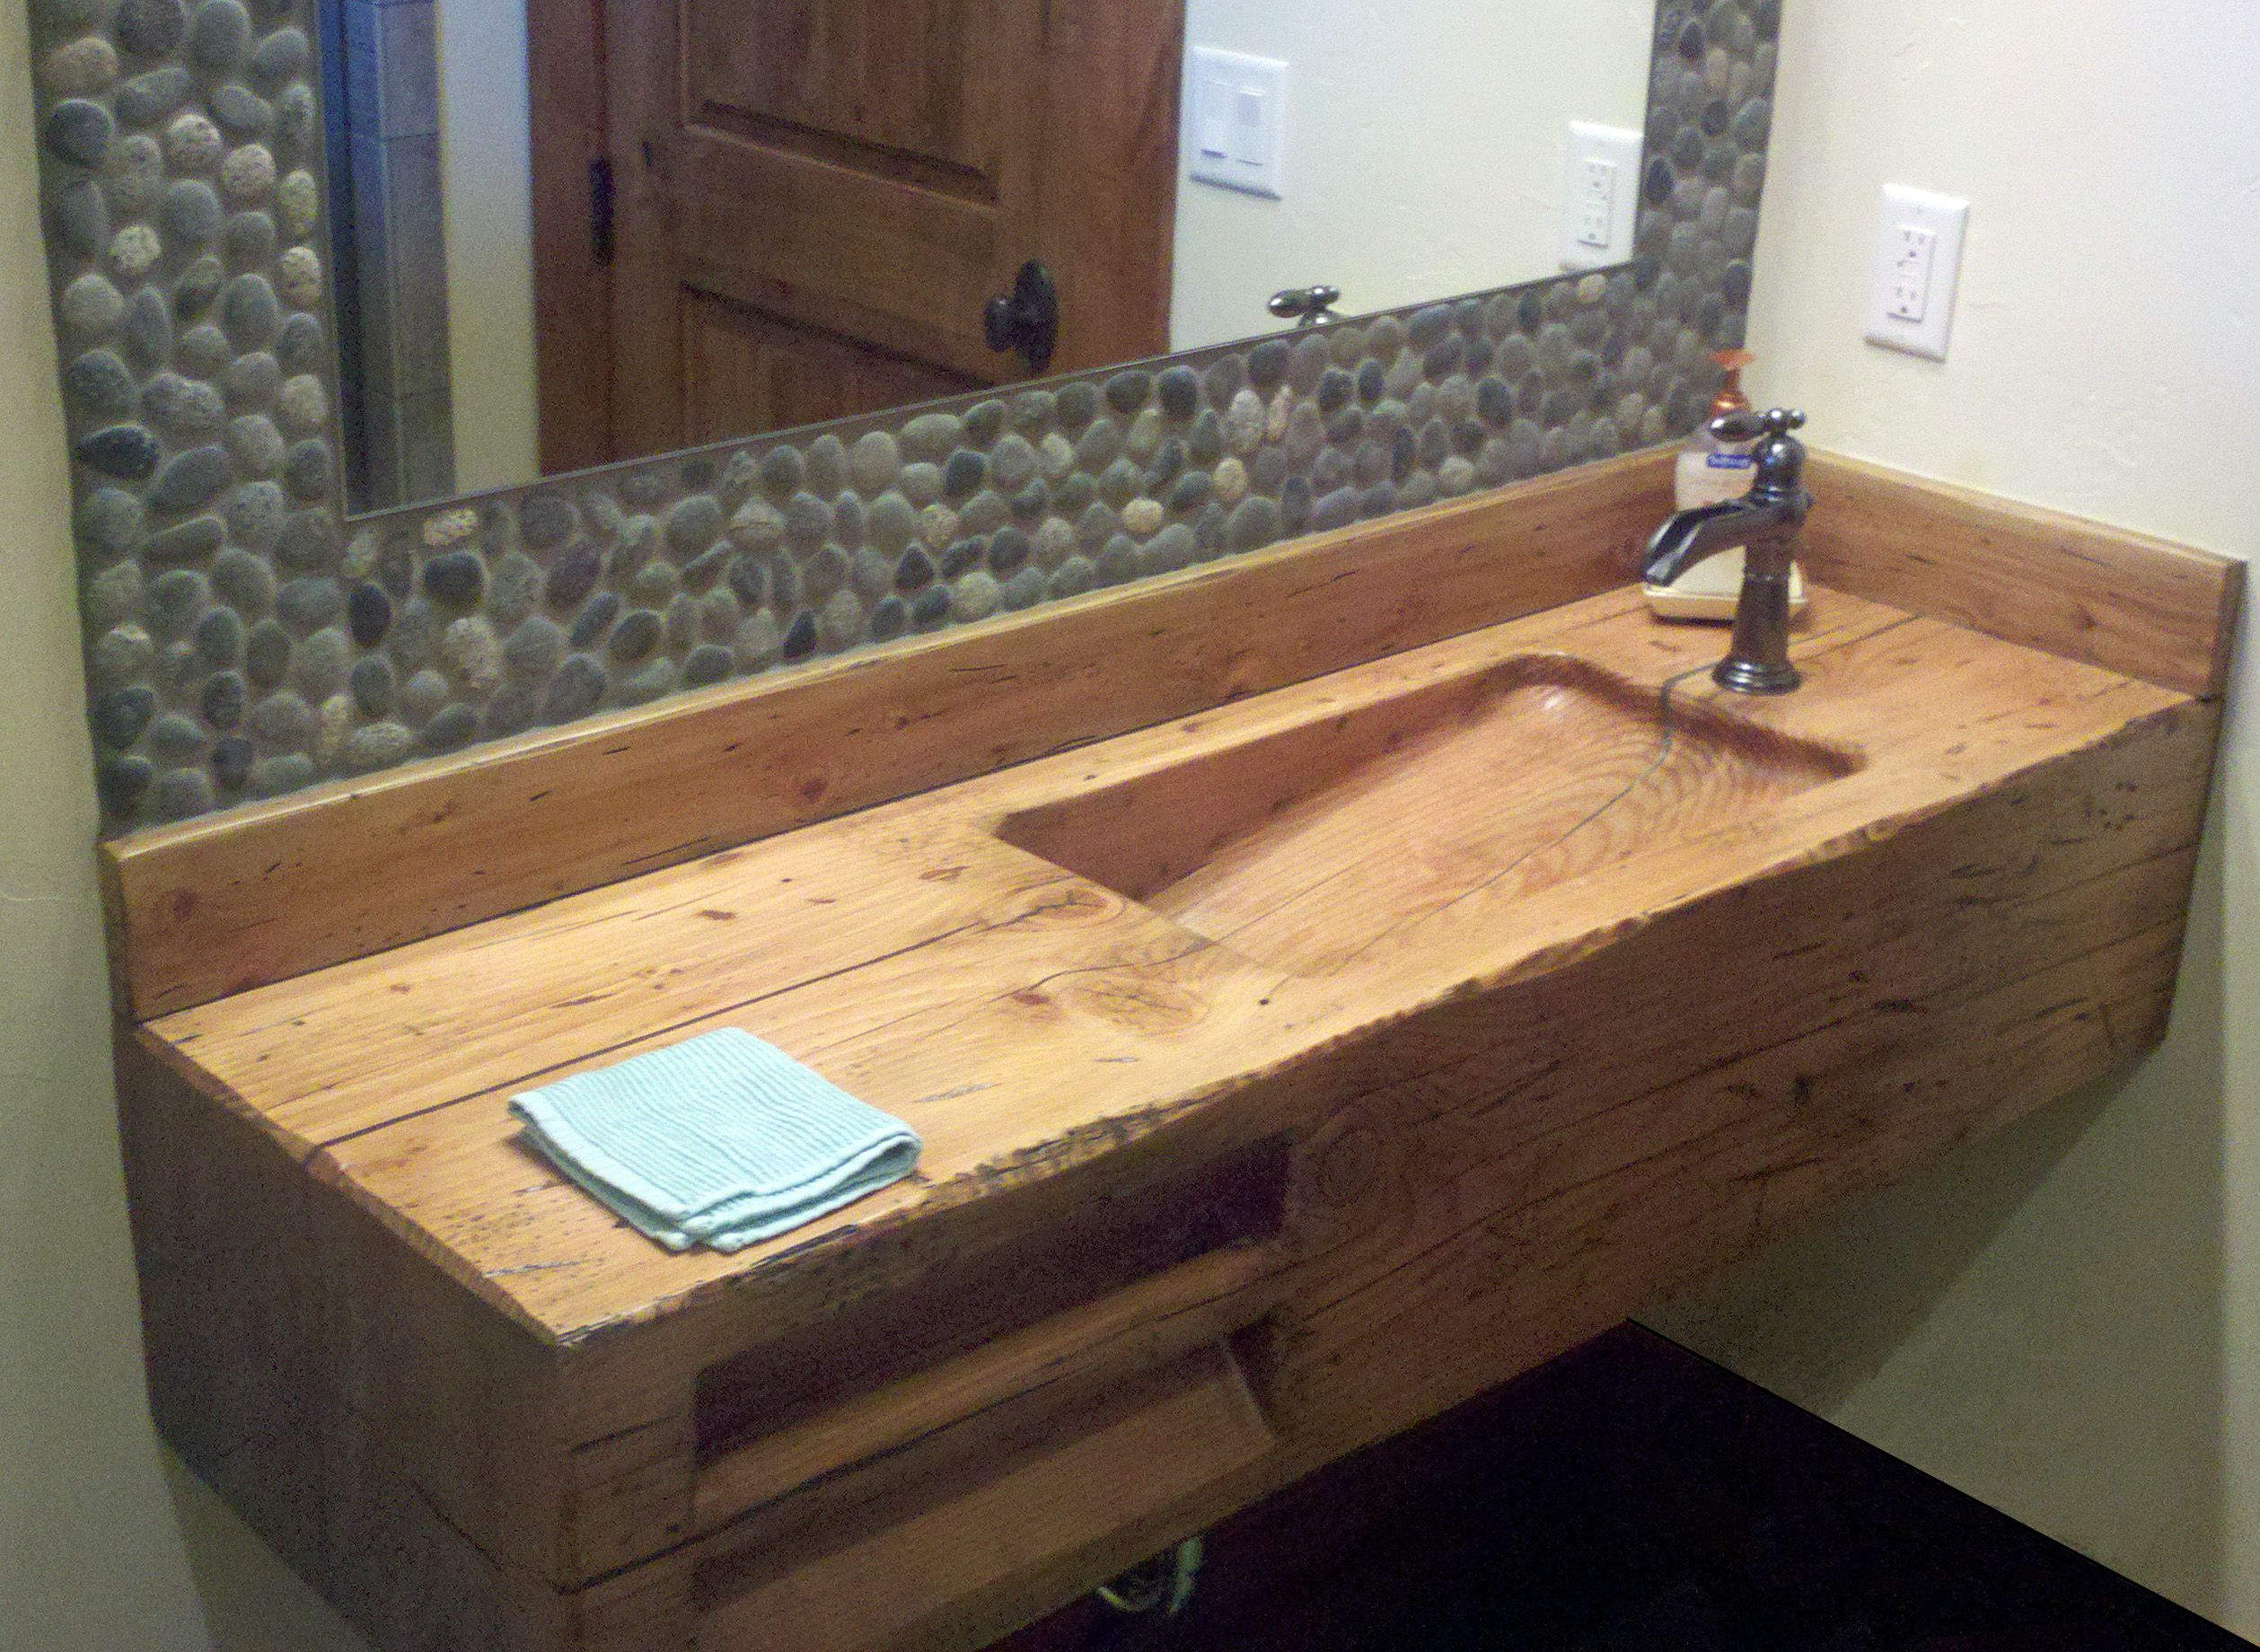 Wooden sink I would like it more with a milled log and routed out